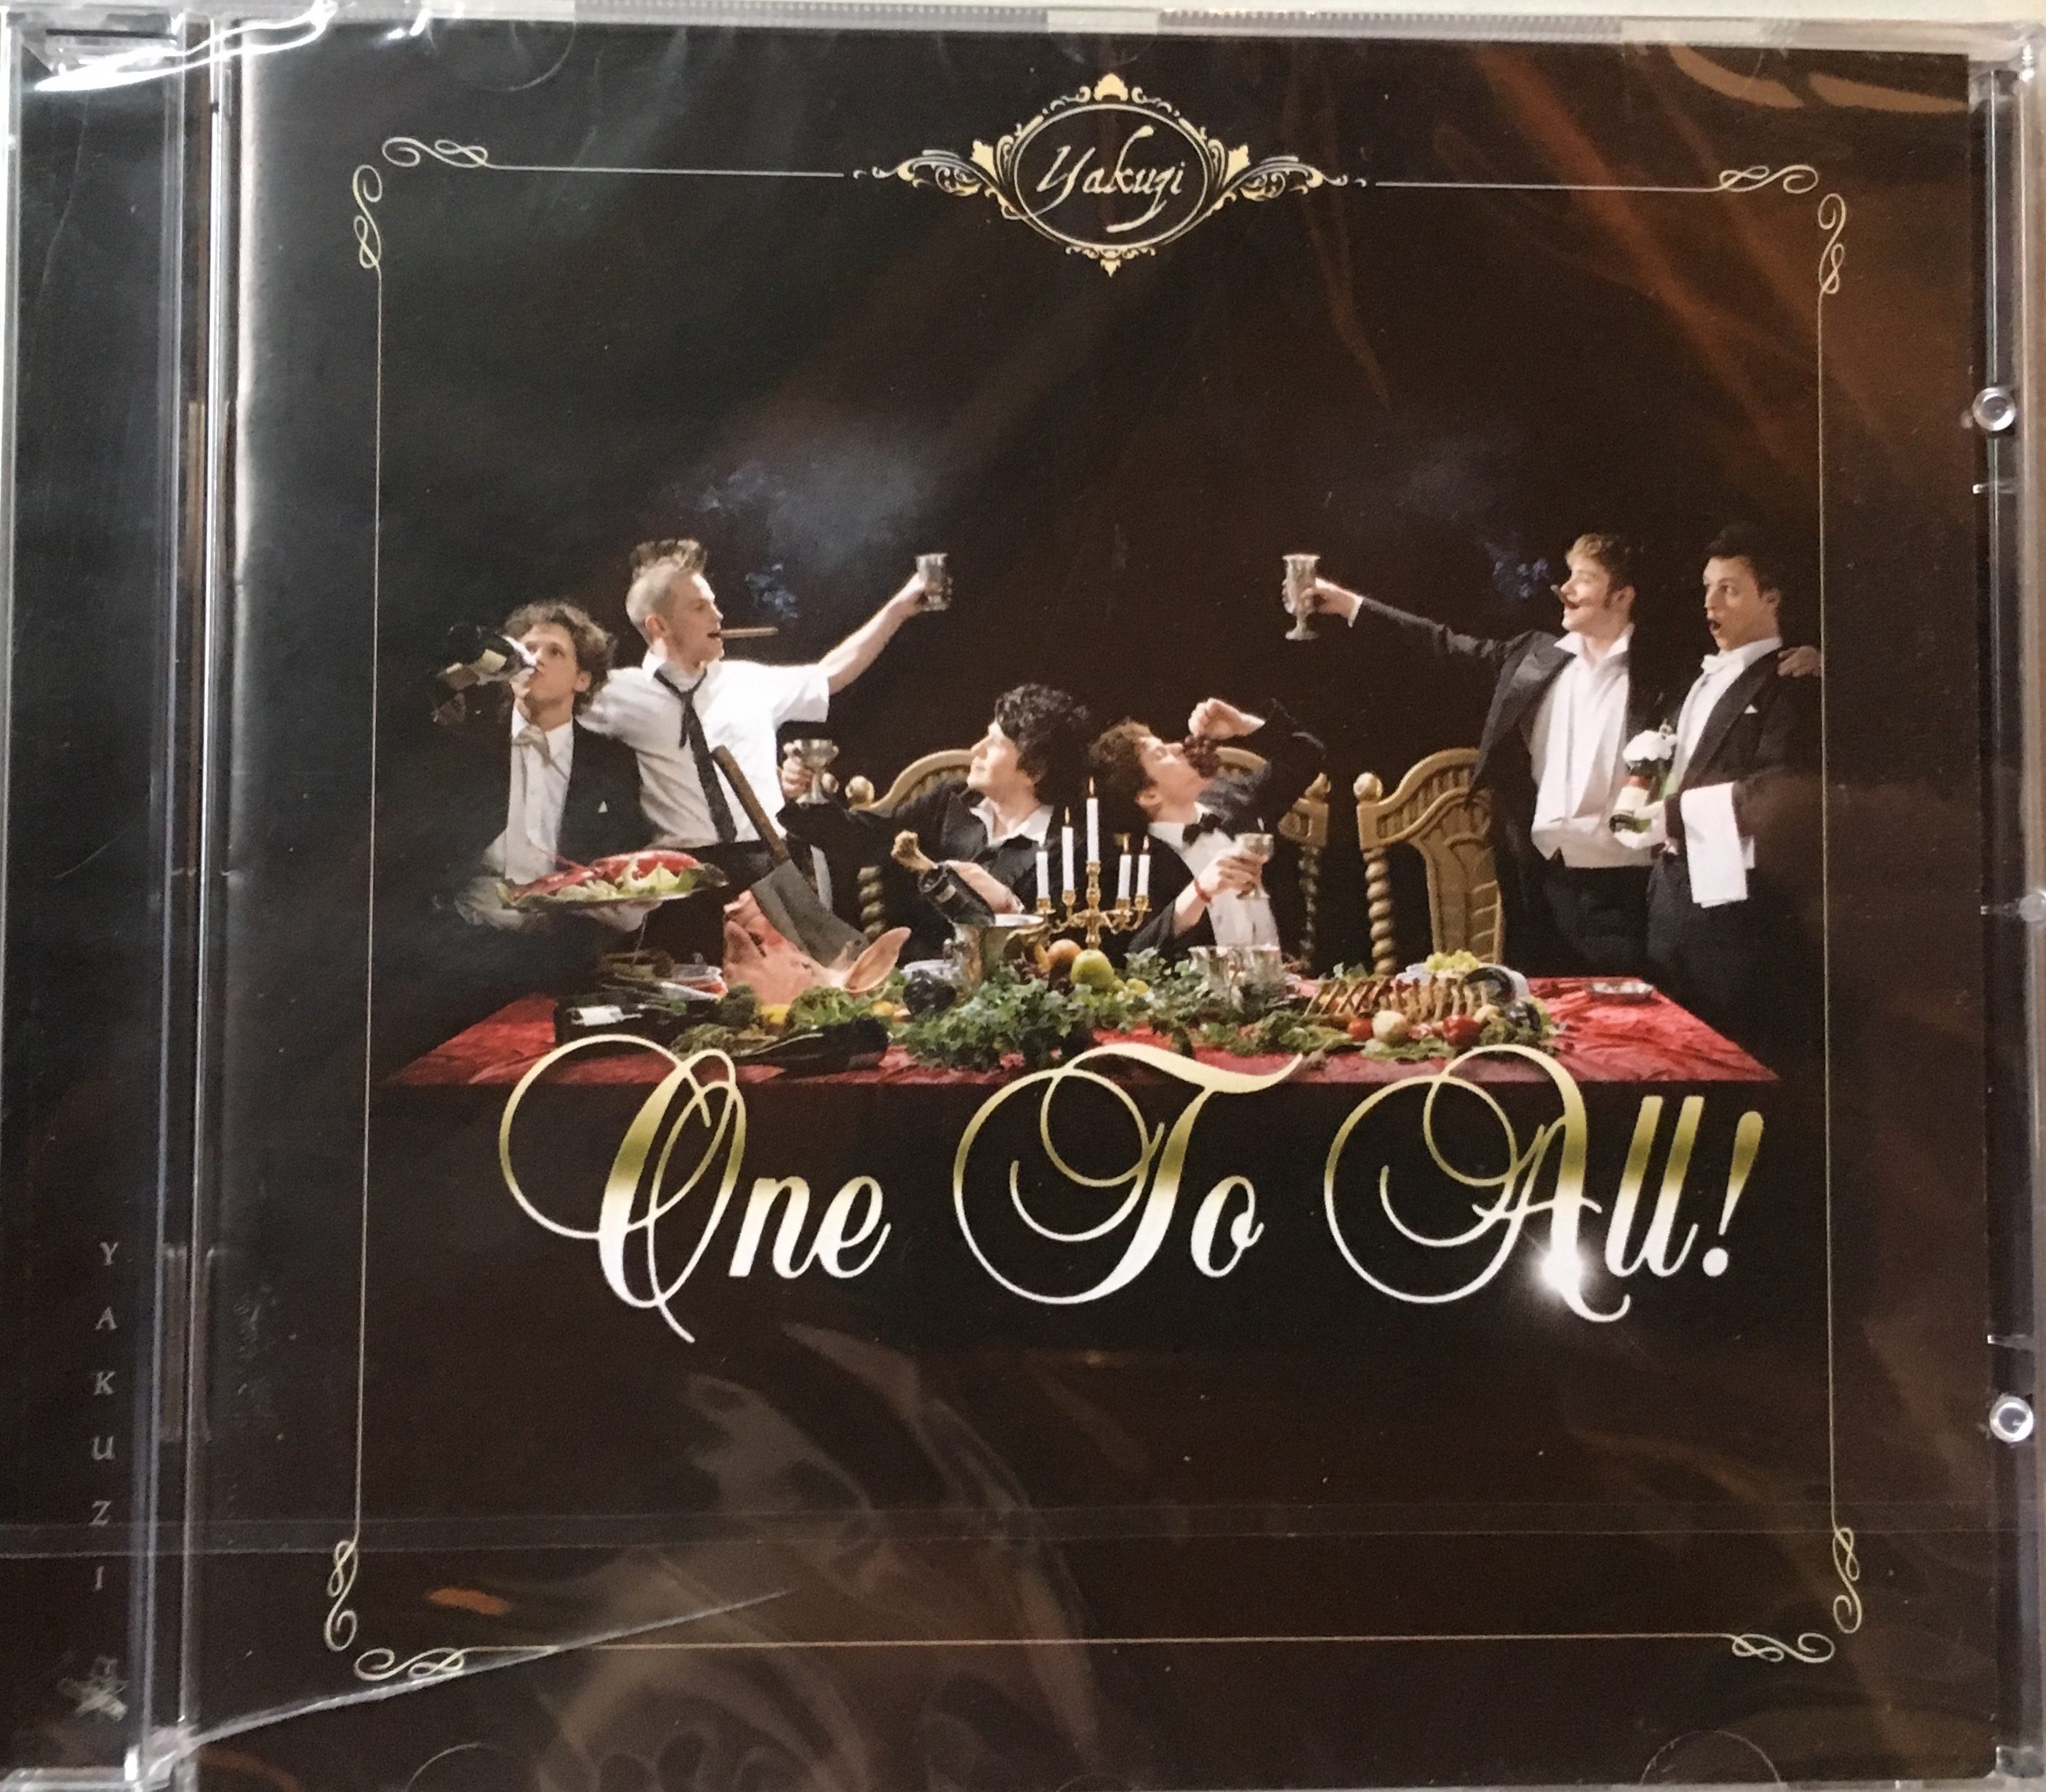 "Coverbild Yakuzi ""One to all"" - festliches Dinner"